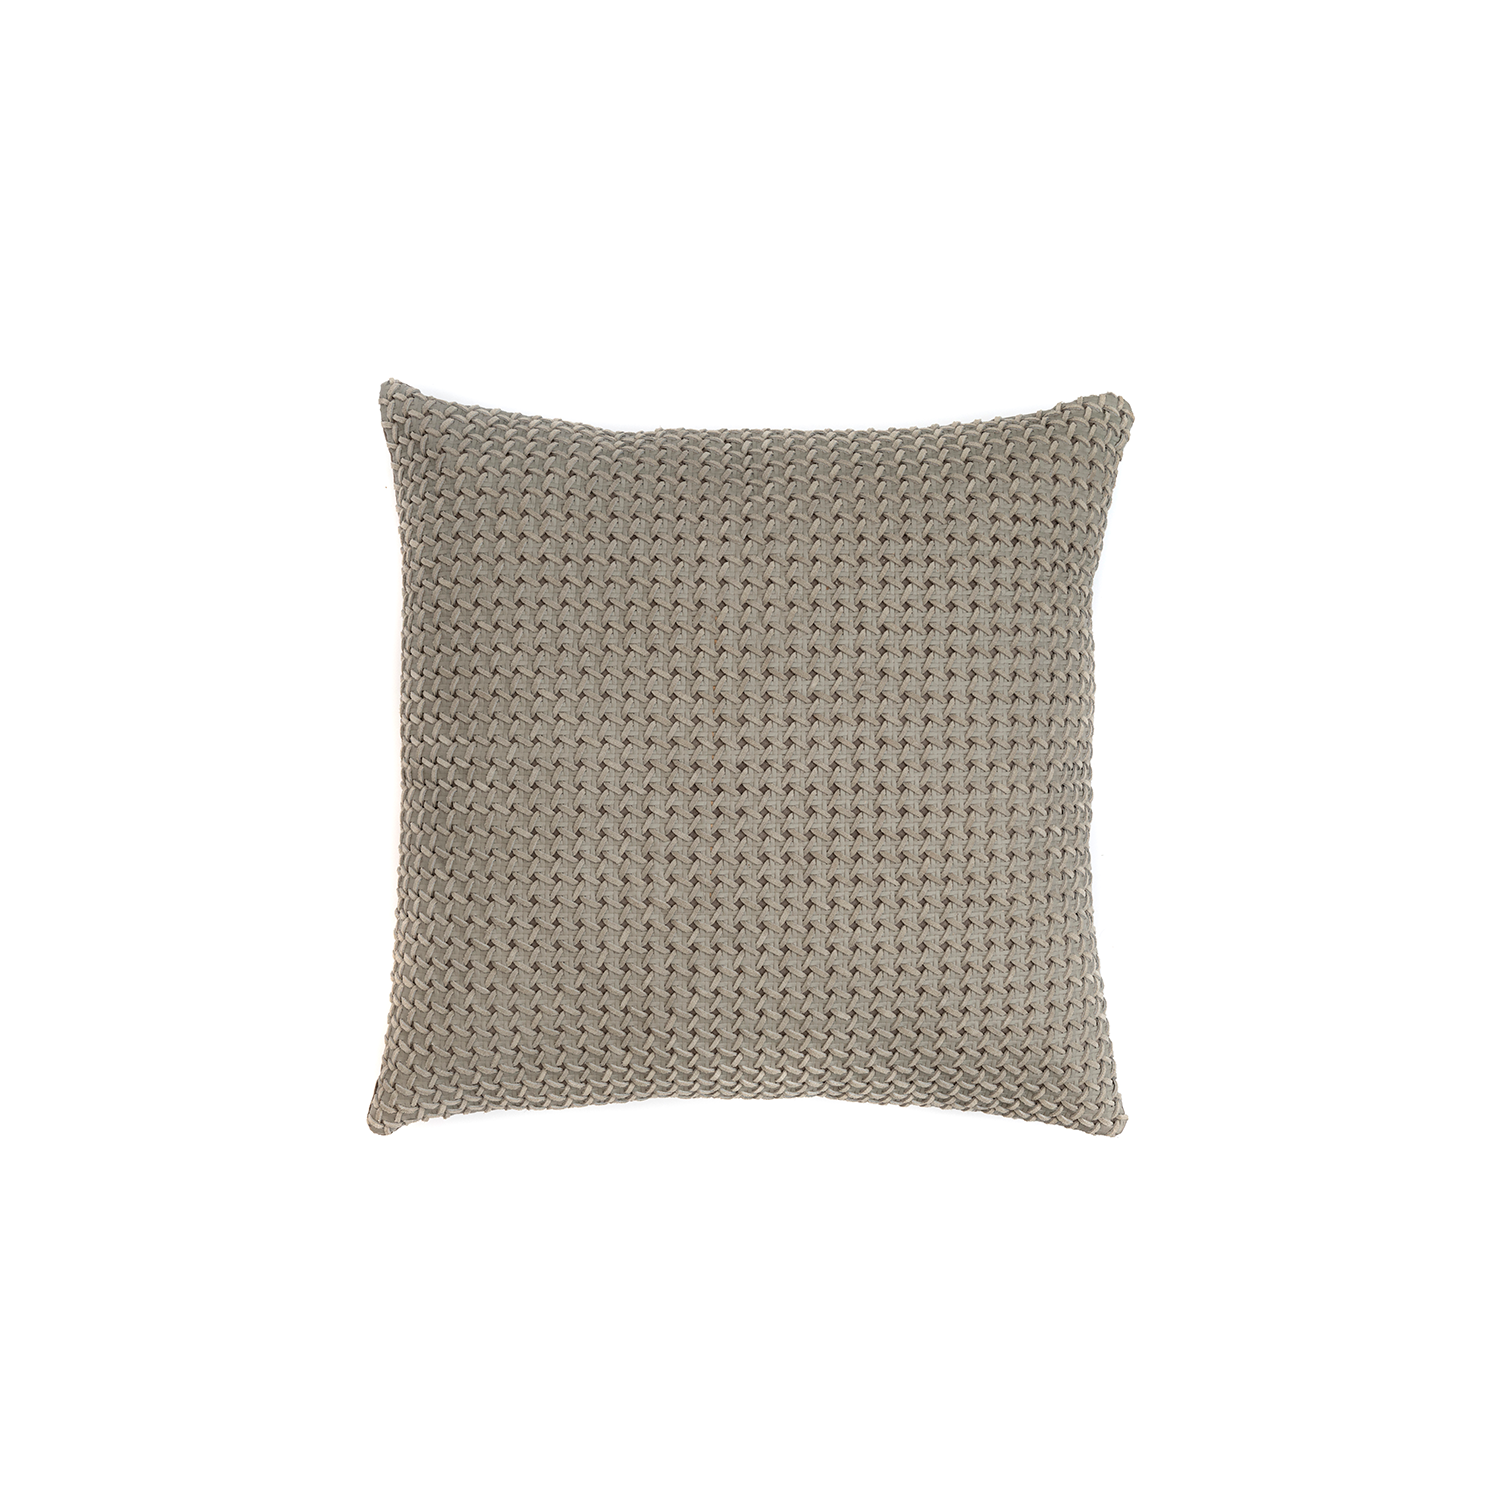 Mini Catavento Woven Suede Leather Cushion Square - The Mini Catavento Woven Suede Leather Cushion is designed to complement an ambient with a natural and sophisticated feeling. This cushion style is available in pleated leather or pleated suede leather. Elisa Atheniense woven handmade leather cushions are specially manufactured in Brazil using an exclusive treated leather that brings the soft feel touch to every single piece.   The front panel is handwoven in leather and the back panel is 100% Pes, made in Brazil.  The inner cushion is available in Hollow Fibre and European Duck Feathers, made in the UK.  Please enquire for more information and see colour chart for reference.   | Matter of Stuff